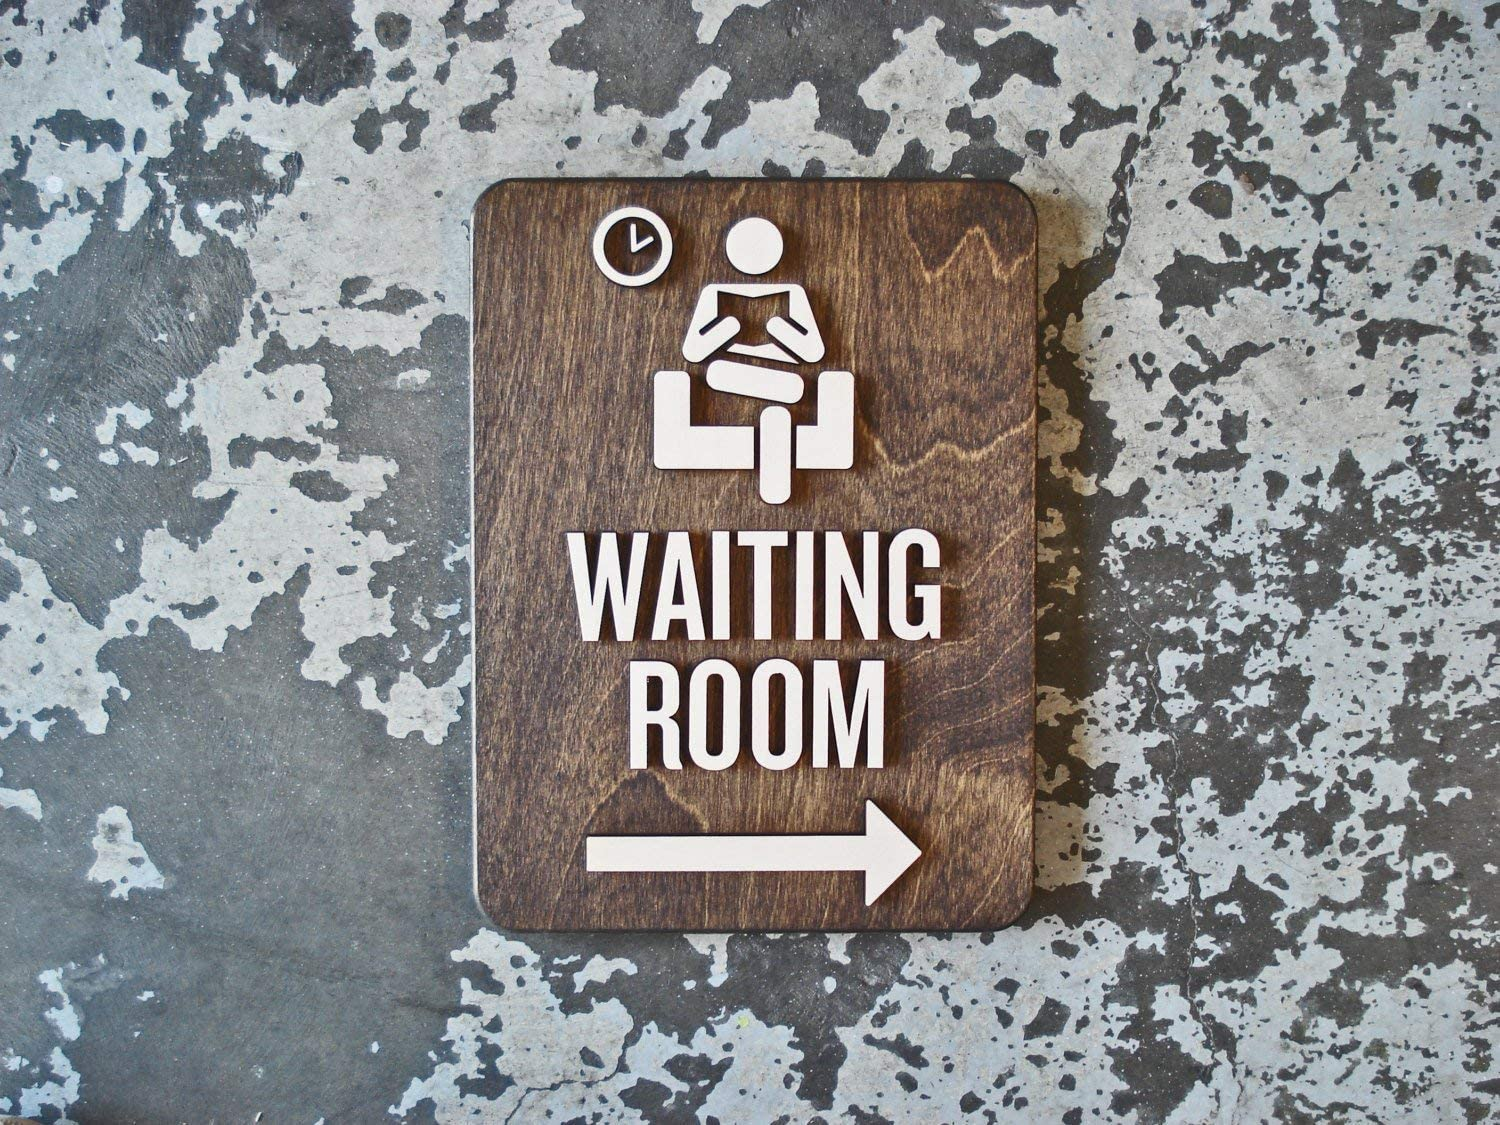 Adonis554Dan Waiting Room Office Signs With or Without Arrow 9 x 12 Size Patient Area Modern Reception Signs age Business Way Finding Decor